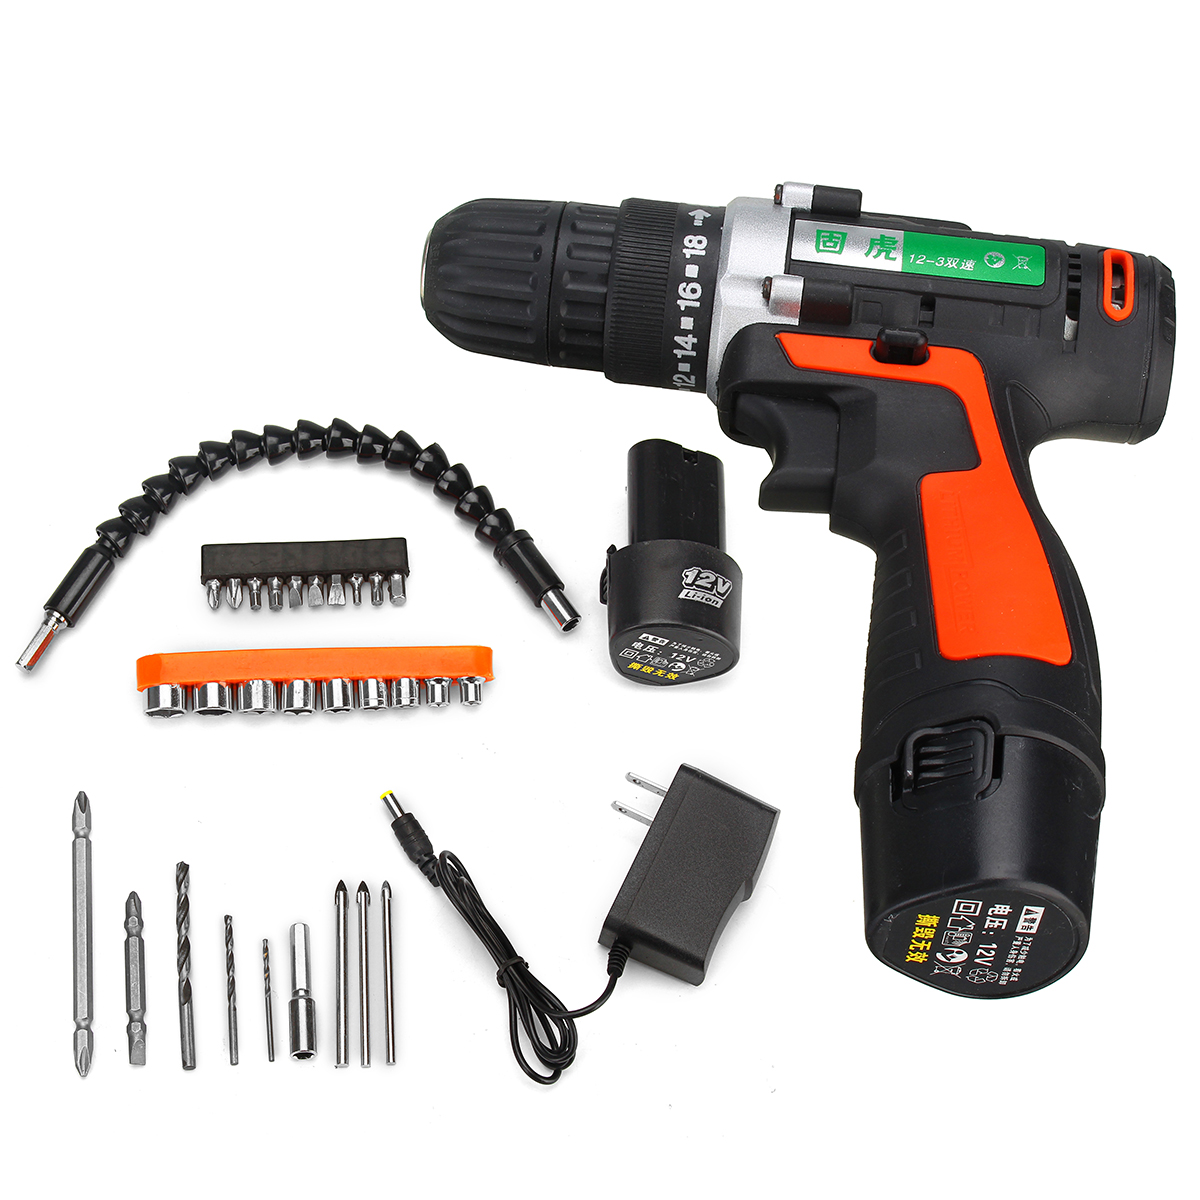 Cordless Drill Driver Drill Power Driver Screwdriver Electric Screwdriver With Li-Ion Battery